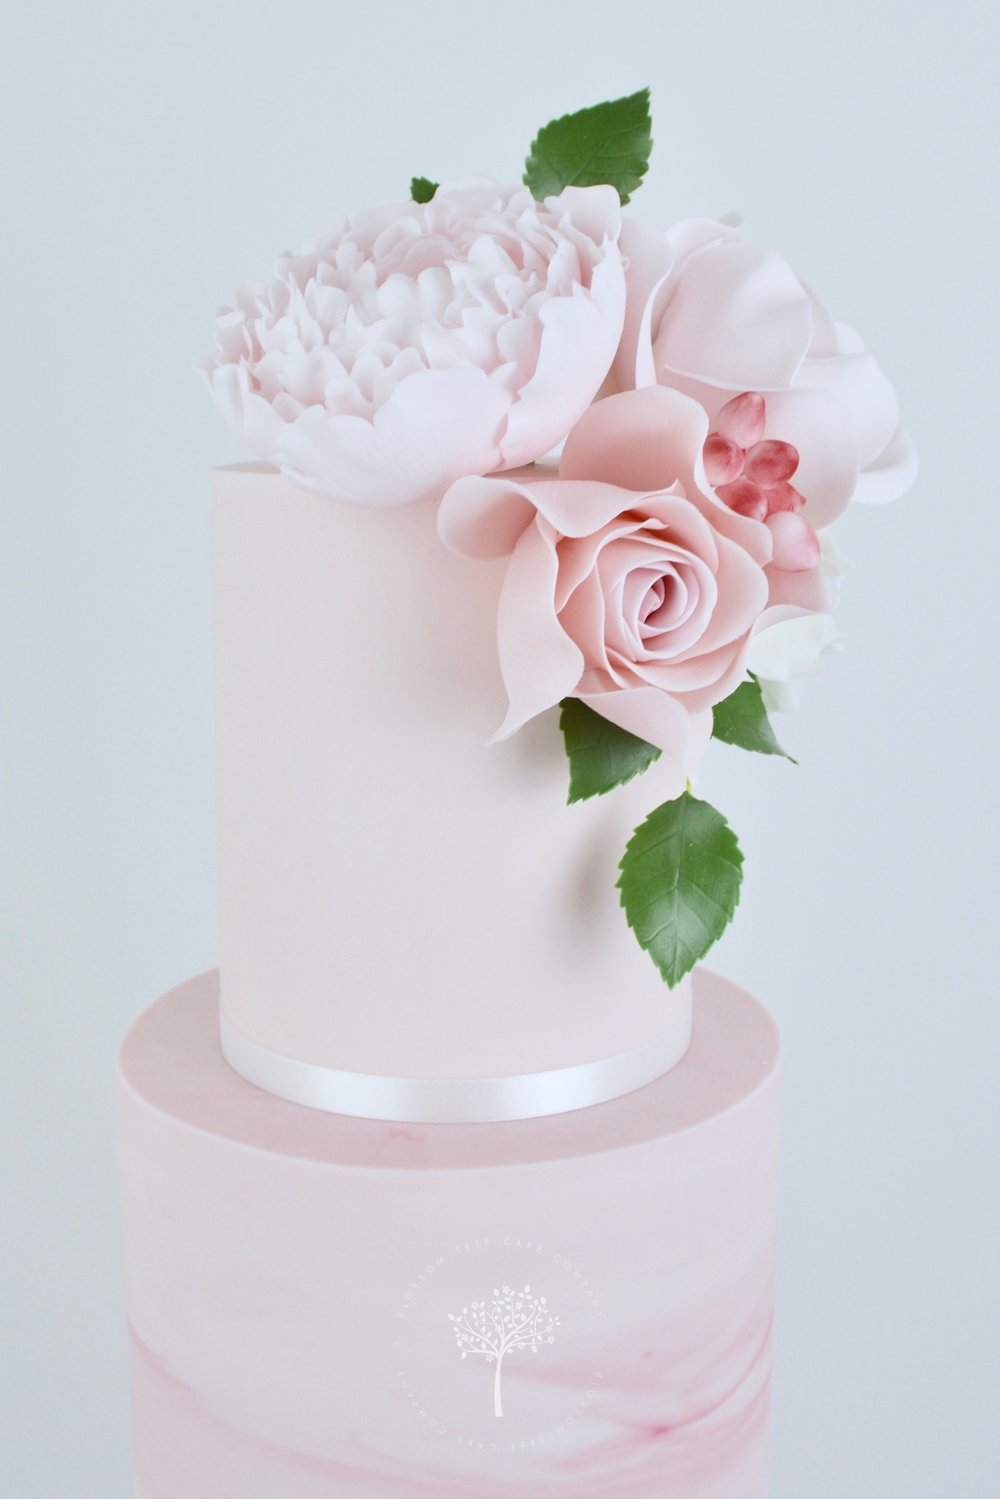 Pink Marble and Lace wedding cake by Blossom Tree Cake Company Harrogate North Yorkshire - top sugar peony.jpg